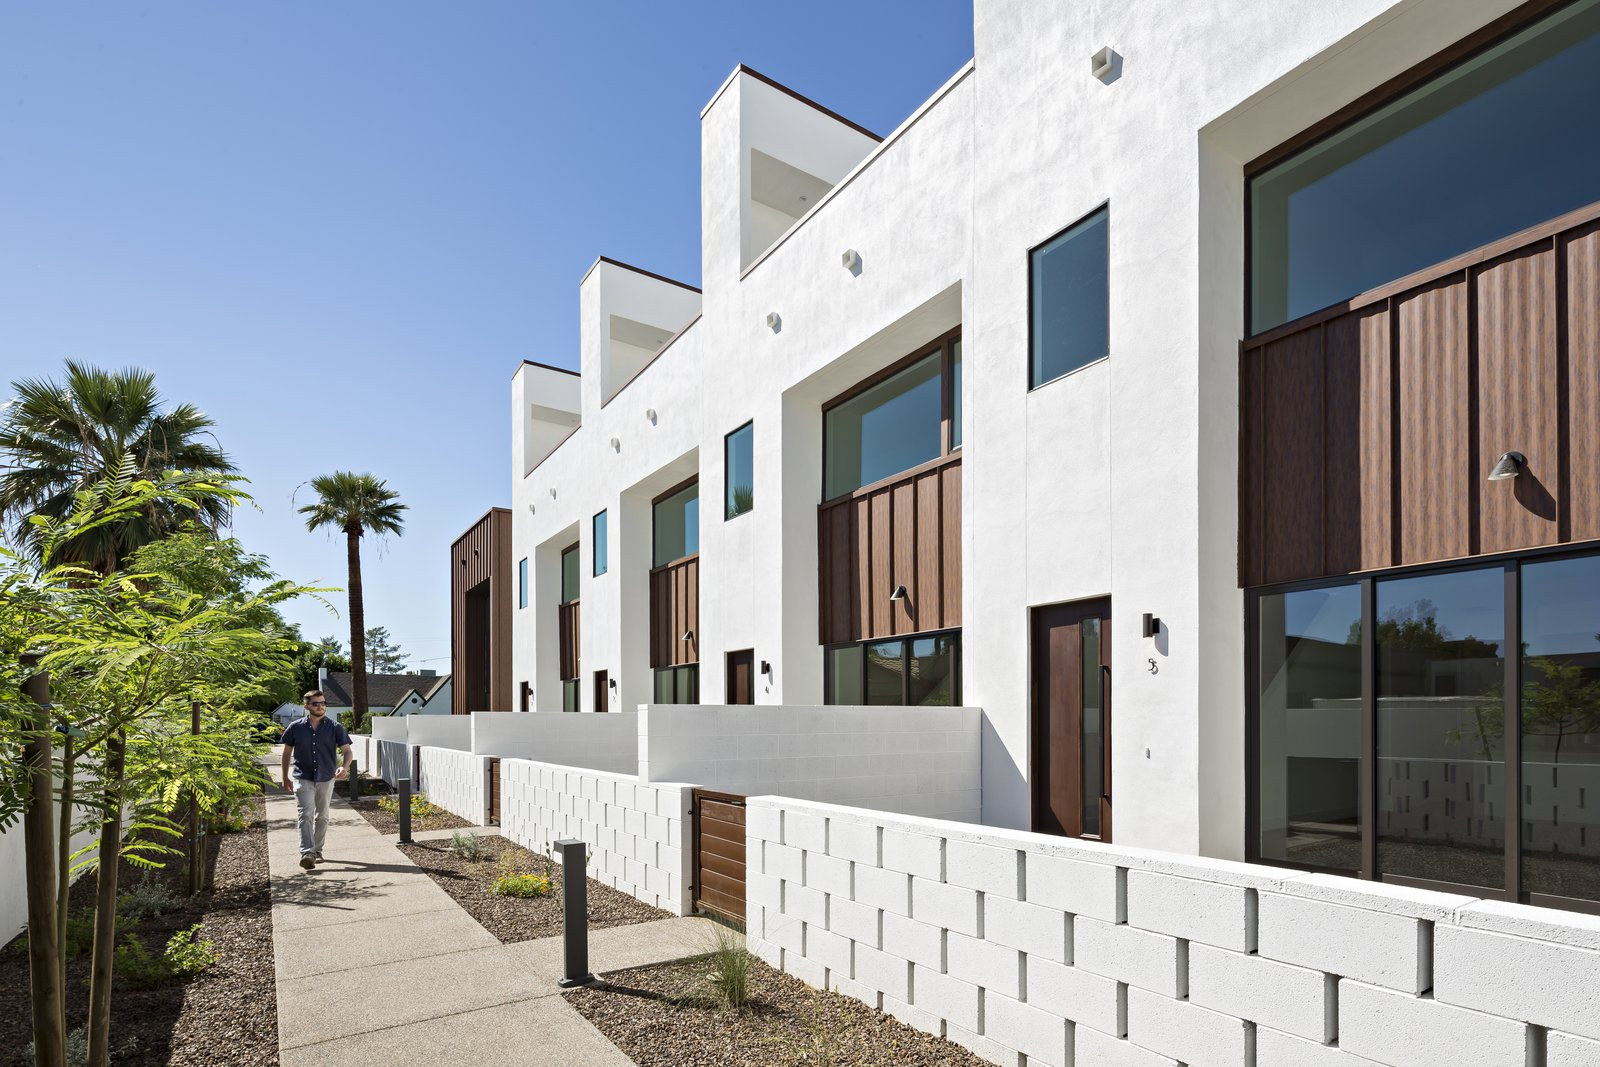 Outdoor, Front Yard, Trees, Desert, Shrubs, Flowers, Hardscapes, Horizontal Fences, Wall, Concrete Patio, Porch, Deck, and Decomposed Granite Patio, Porch, Deck Each unit in this development is accessed by a pedestrian walkway through a private courtyard. The low, spaced concrete block wall provides a social component to the development  Uptown Row